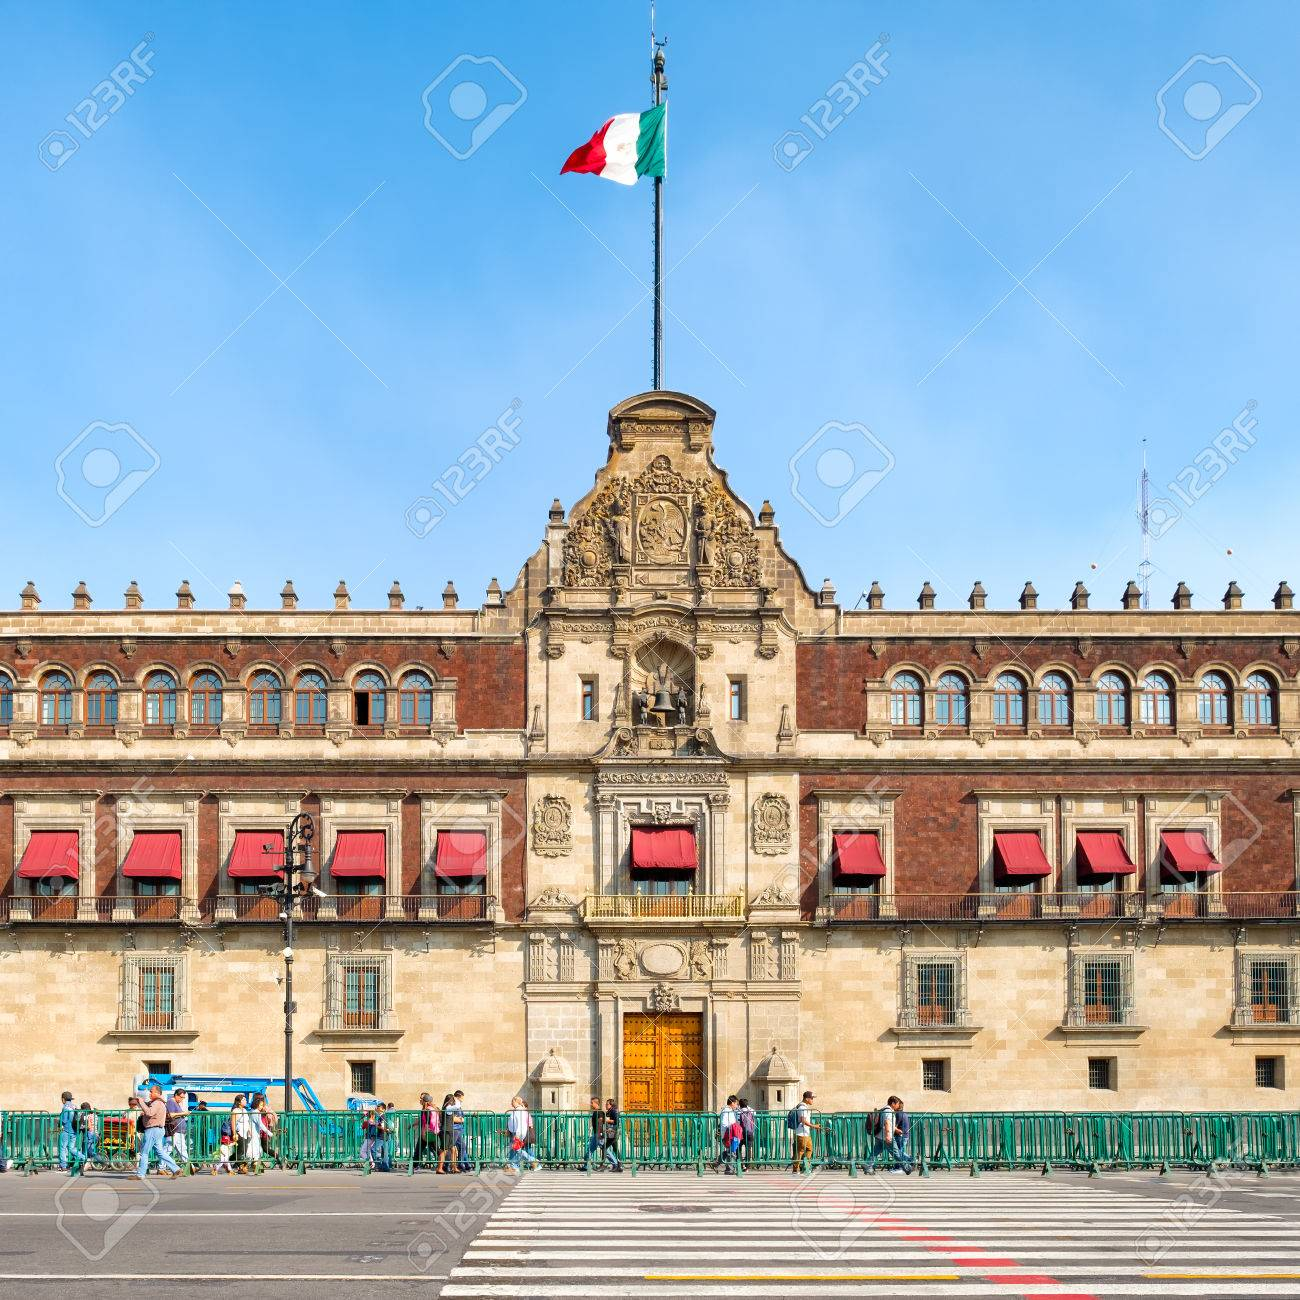 The National Palace next to the Zocalo in Mexico City - 68766950